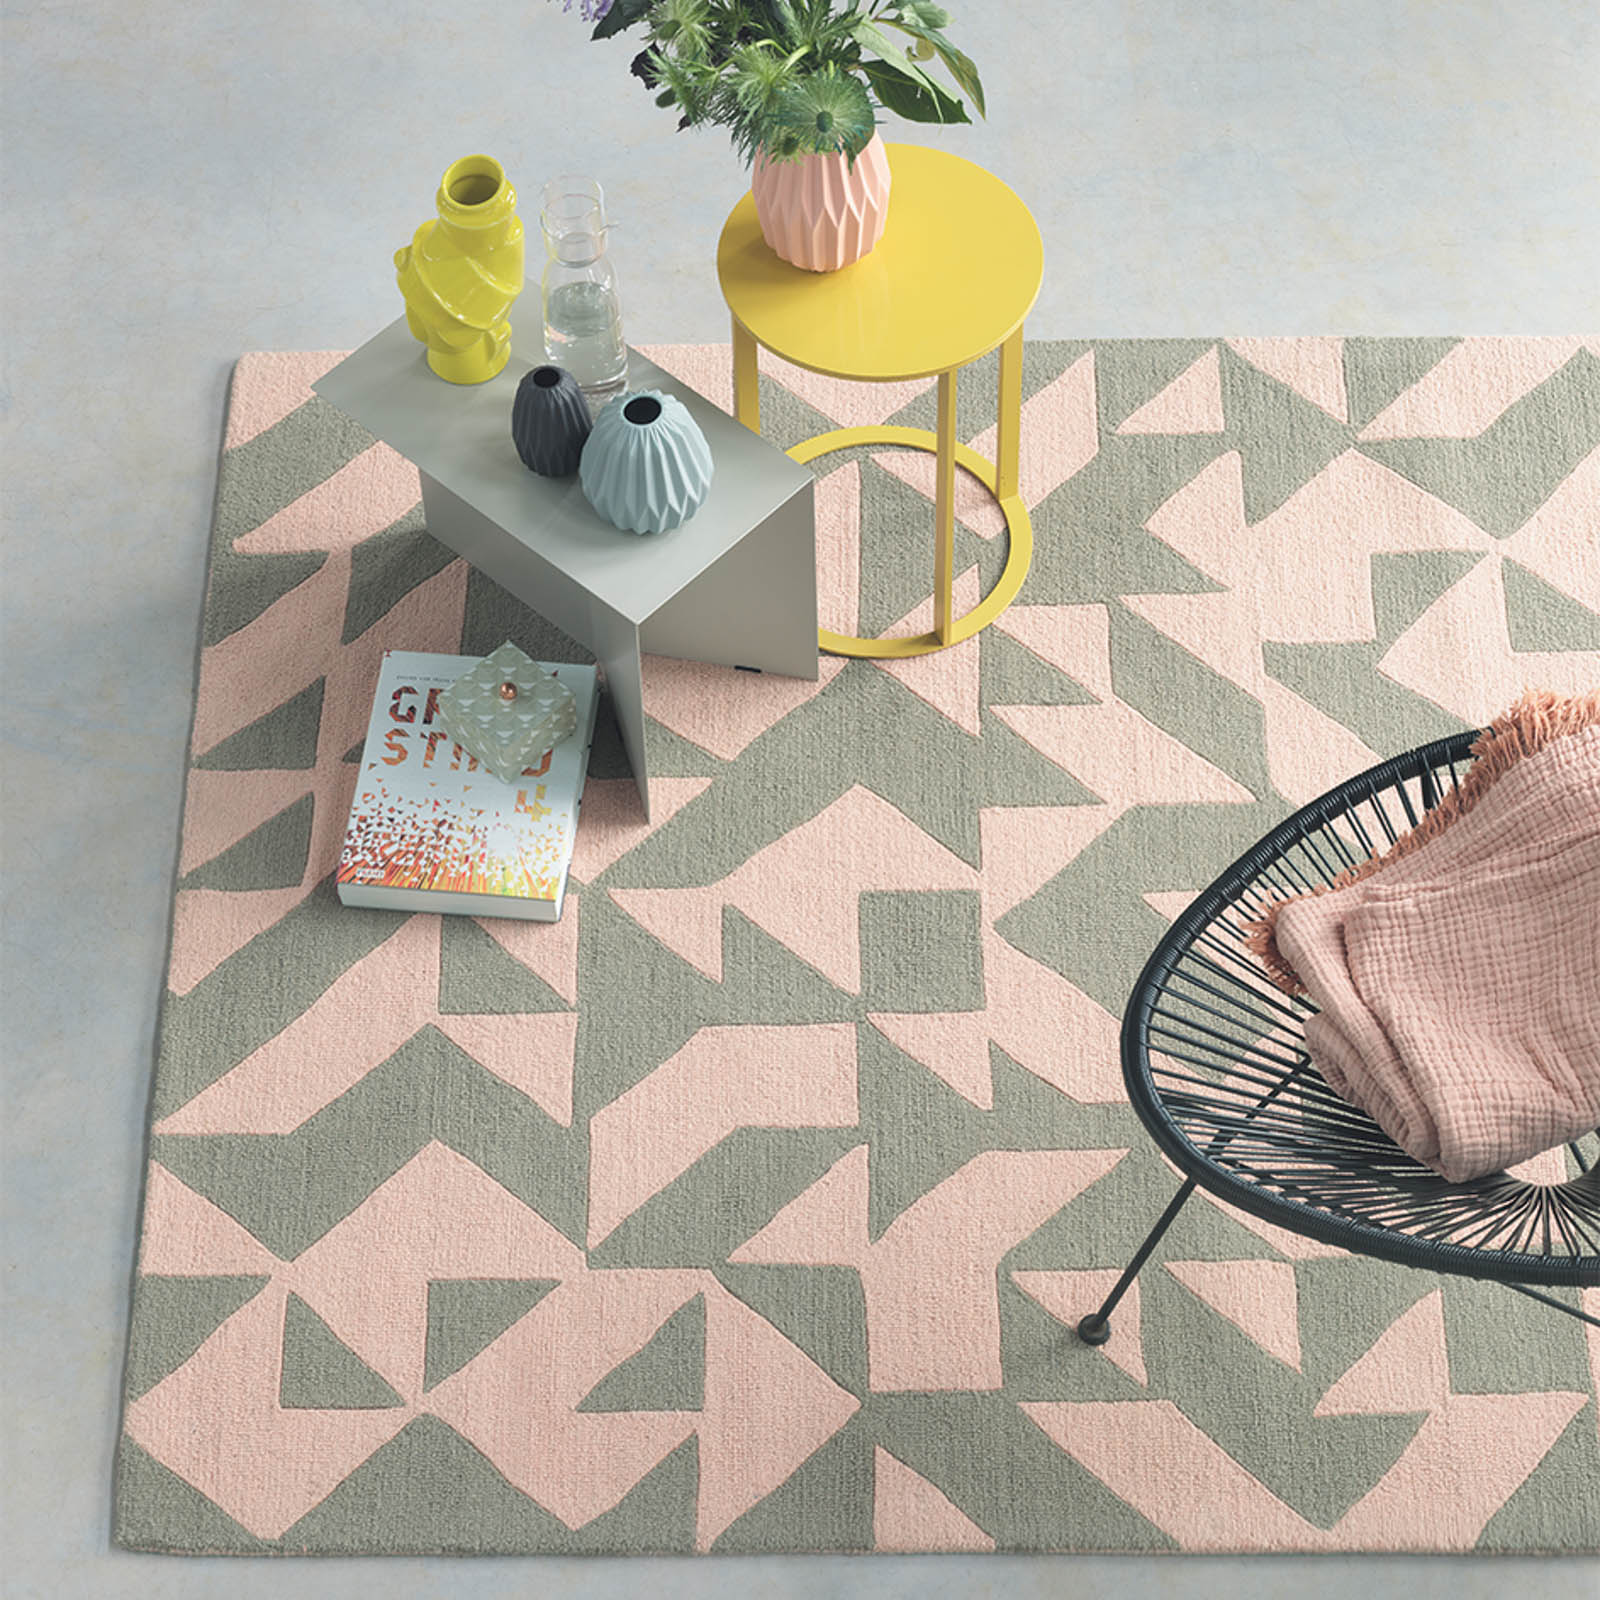 Nova Origami Rugs 89002 in Pink and Taupe by Brink and Campman